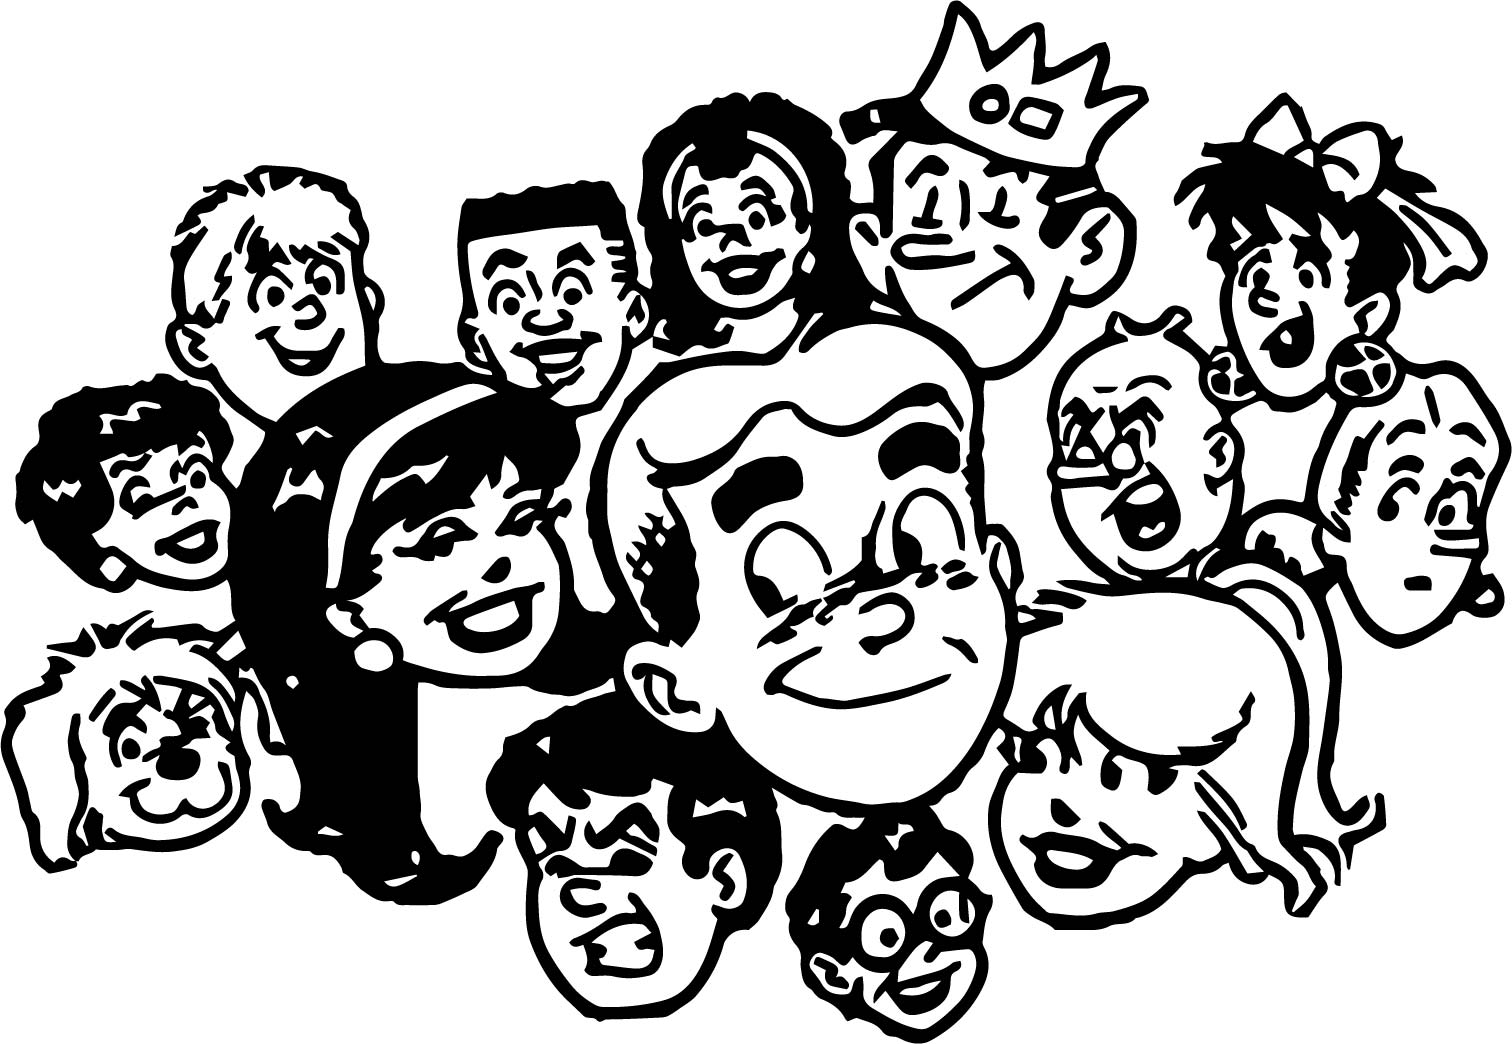 Archie Friends Archie And Friends Coloring Page